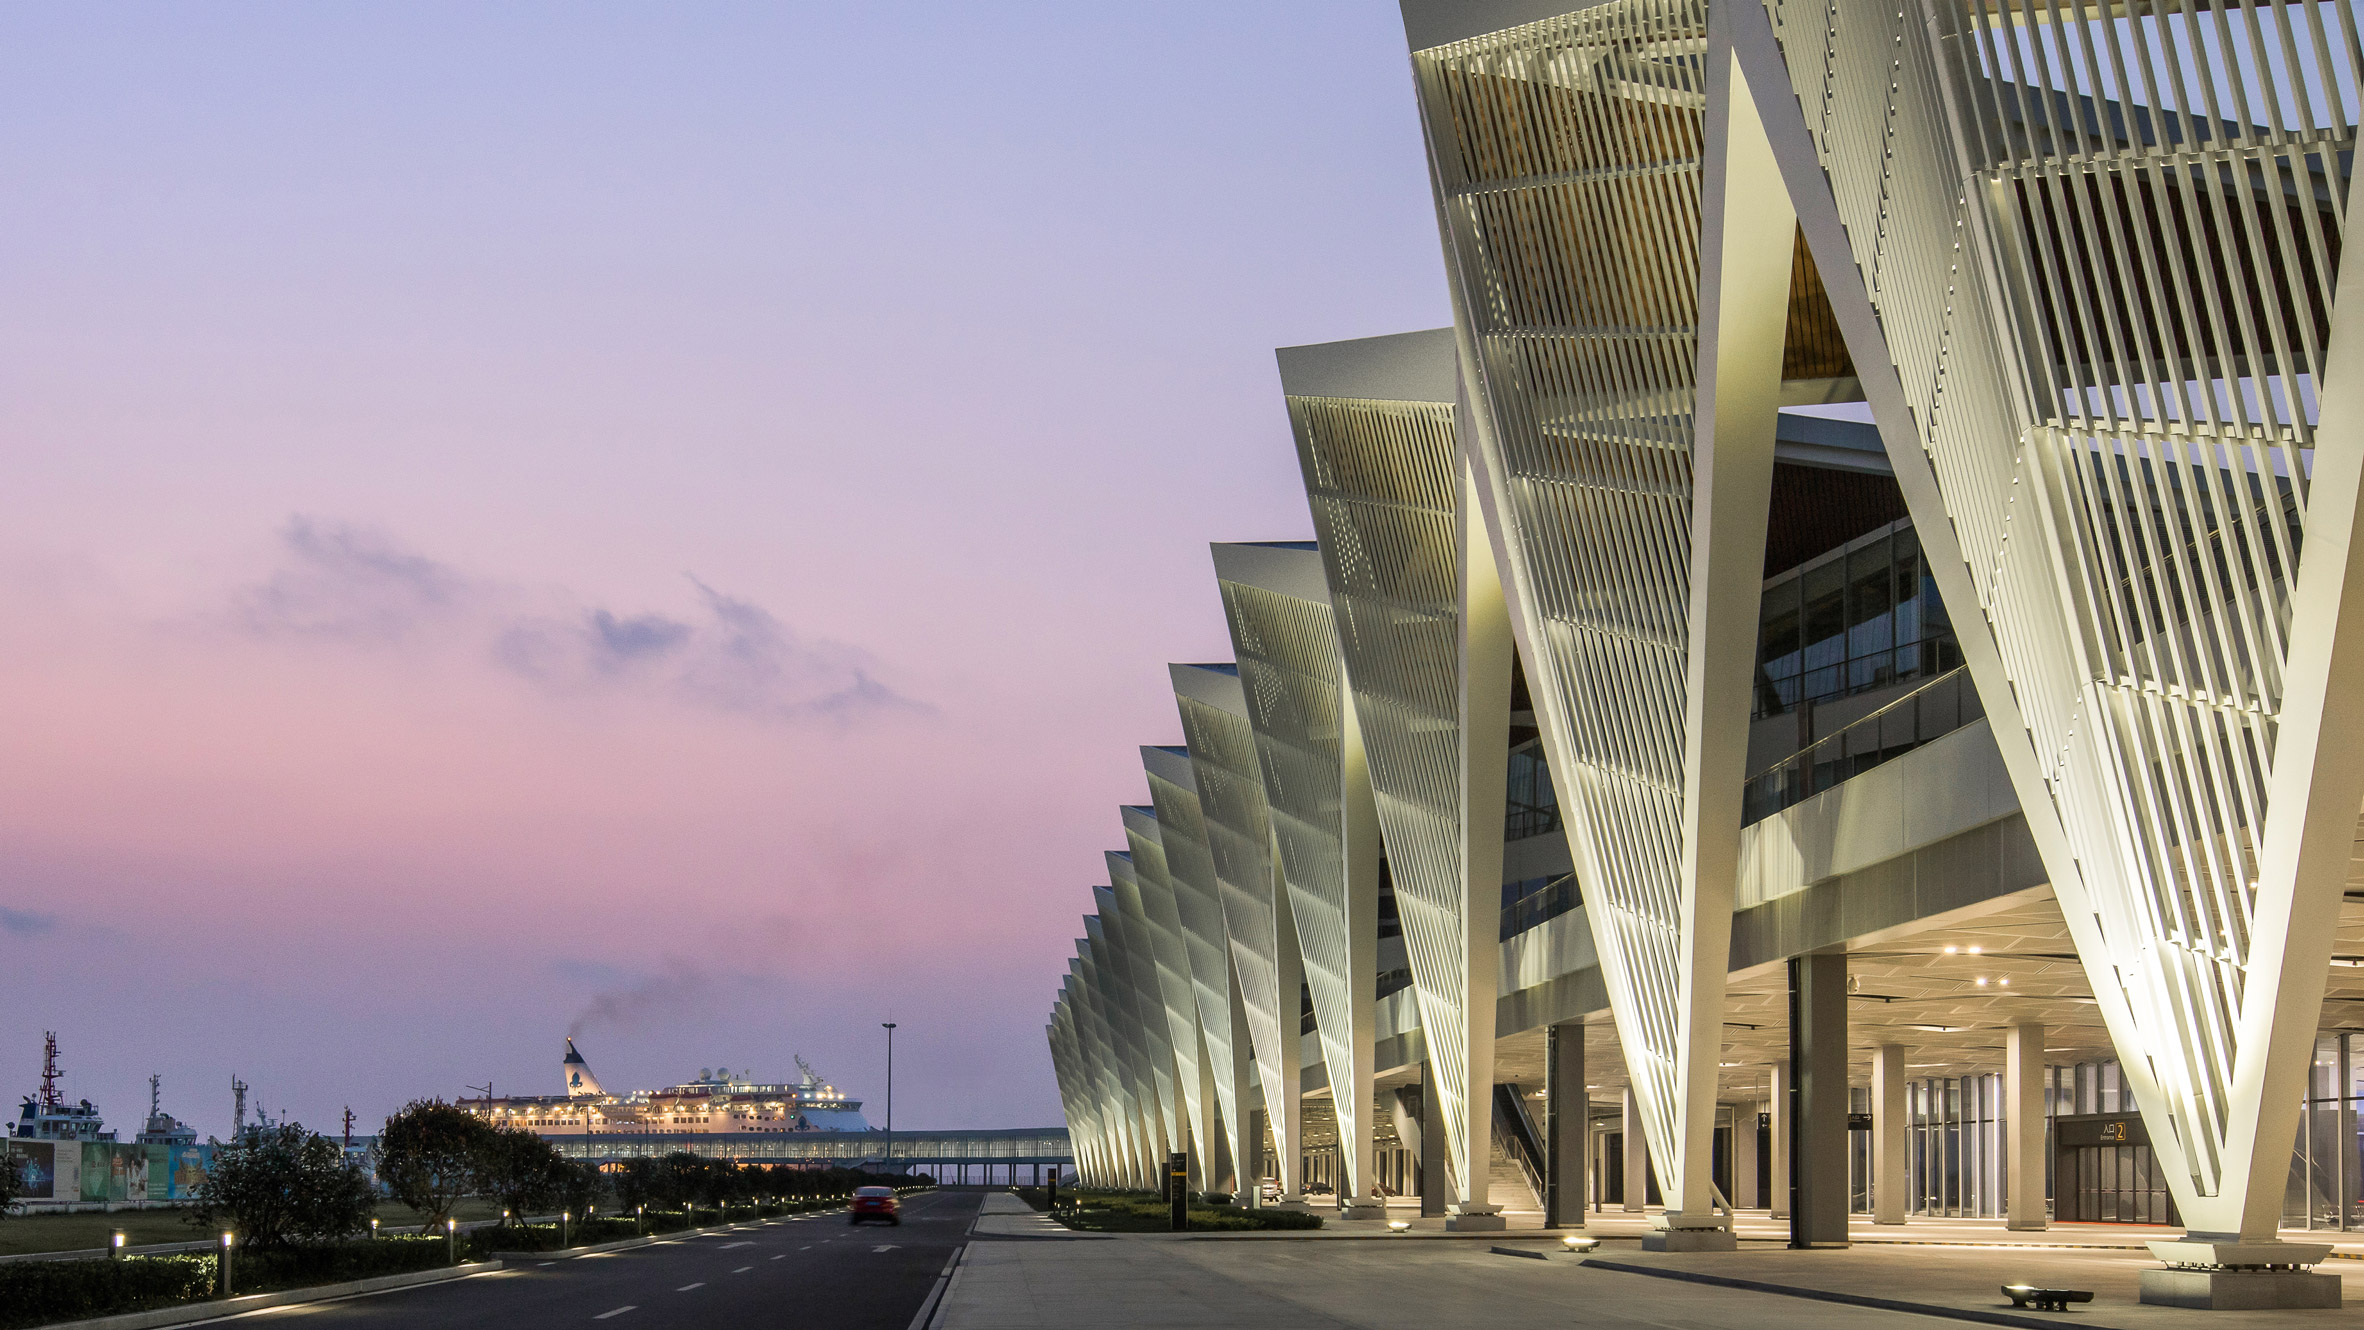 Qingdao cruise terminal 39 s angular facade references boats for Angular 1 architecture